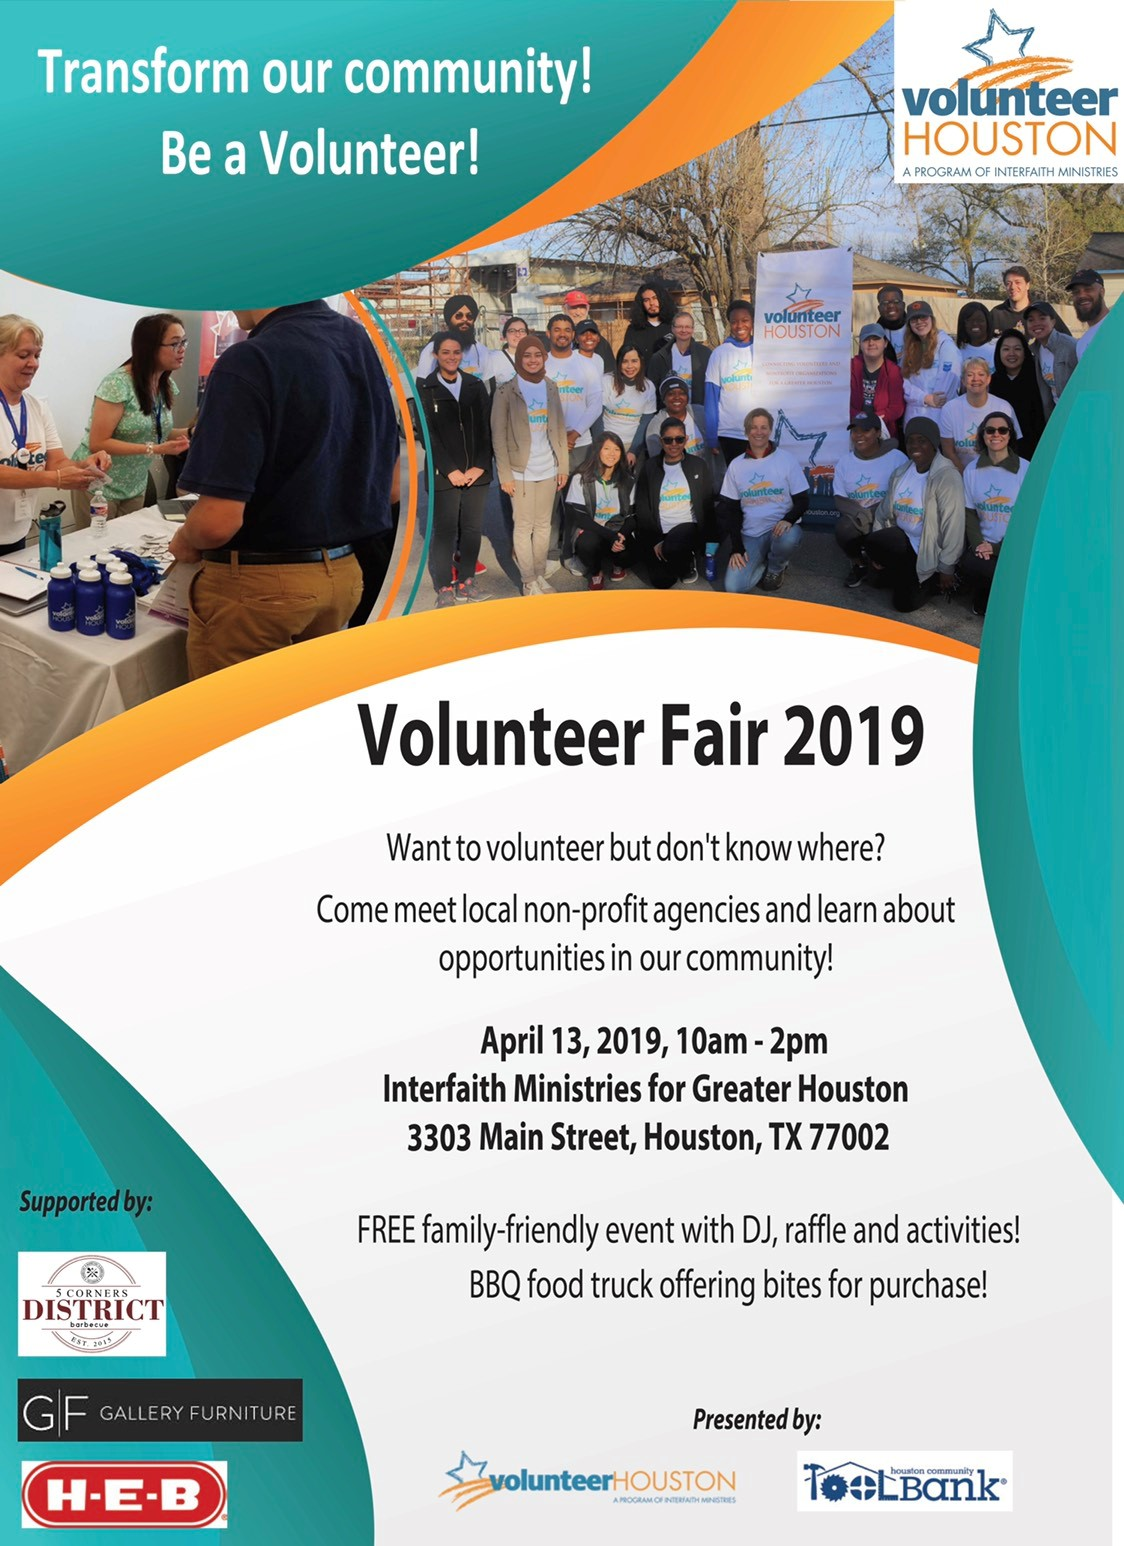 VH Volunteer Fair Flyer